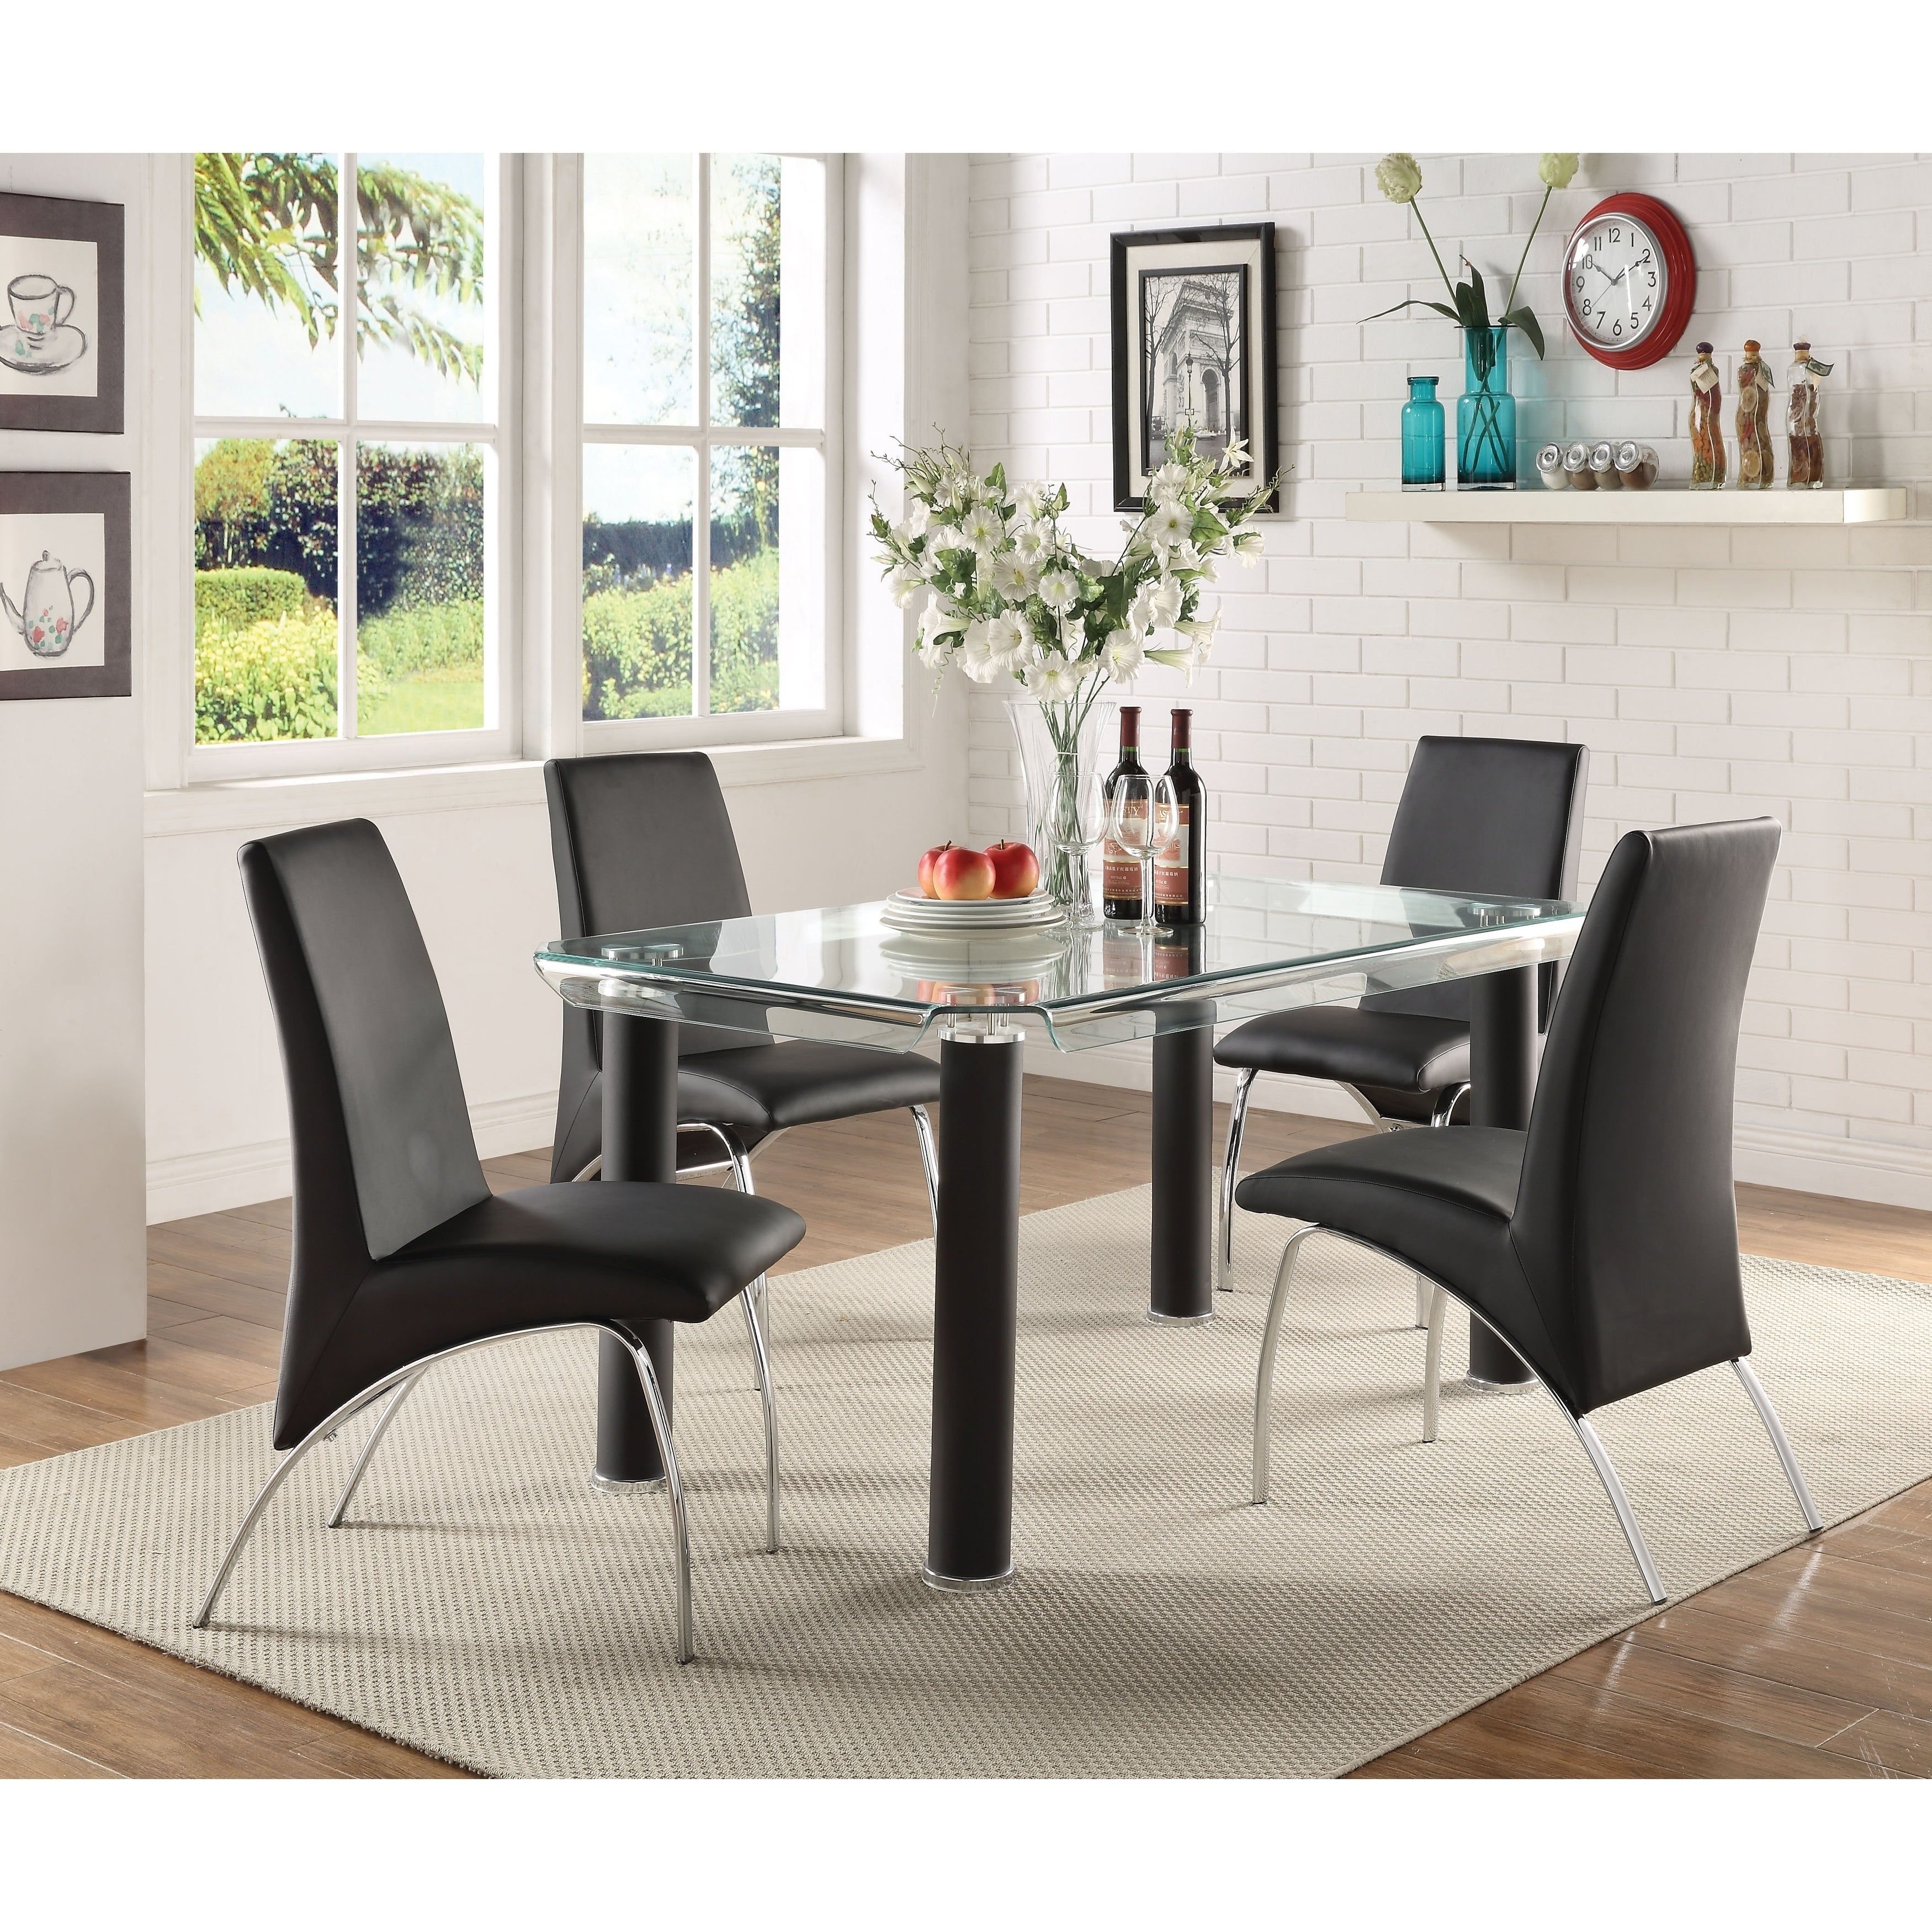 Leatherette Upholstered Side Chairs With Metal Base Black And Silver Set Of Two Benzara Side Chairs Dining Side Chairs Upholstered Dining Chairs